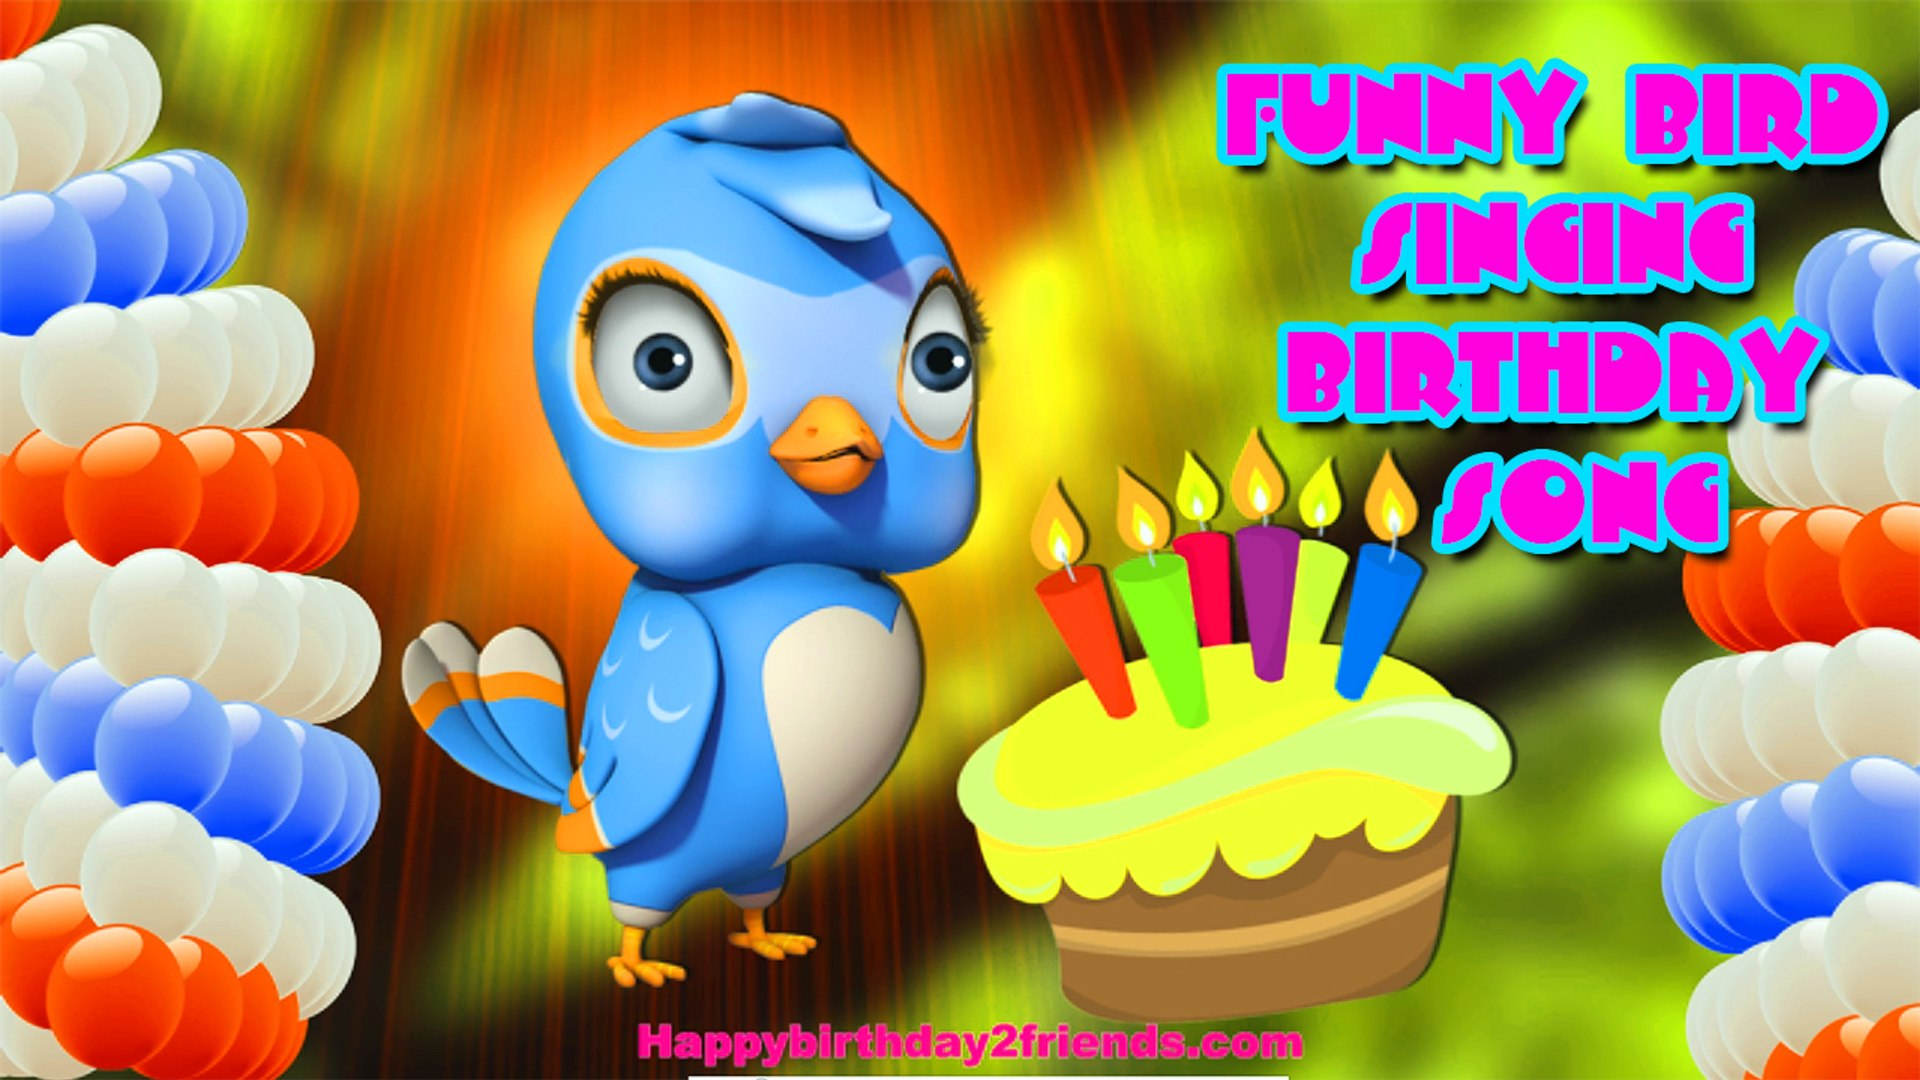 Best Happy Birthday Song Funny Bird Singing Birthday Song Video Dailymotion